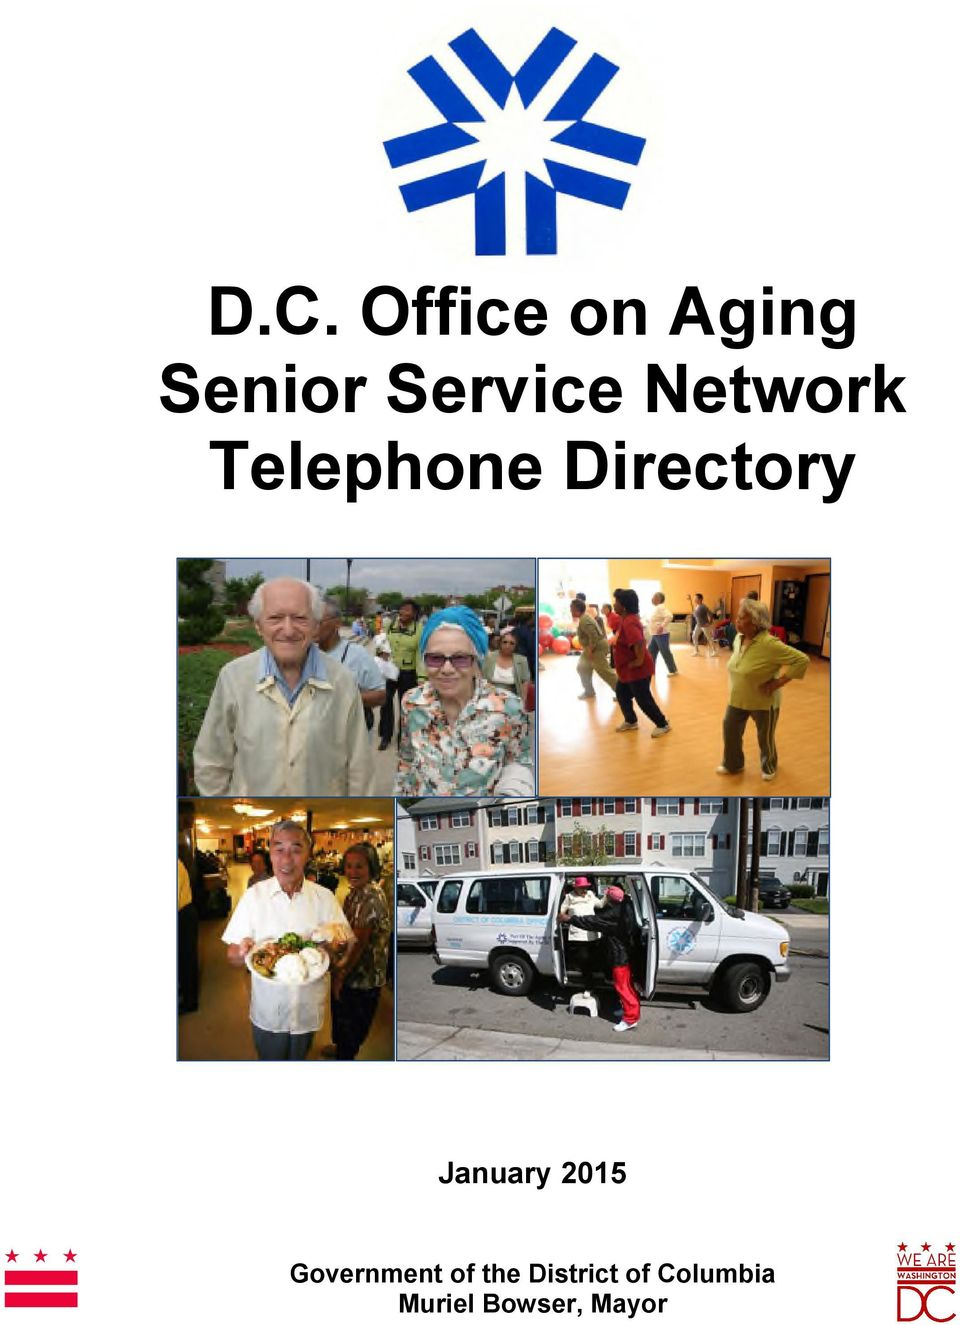 Network Telephone Directory